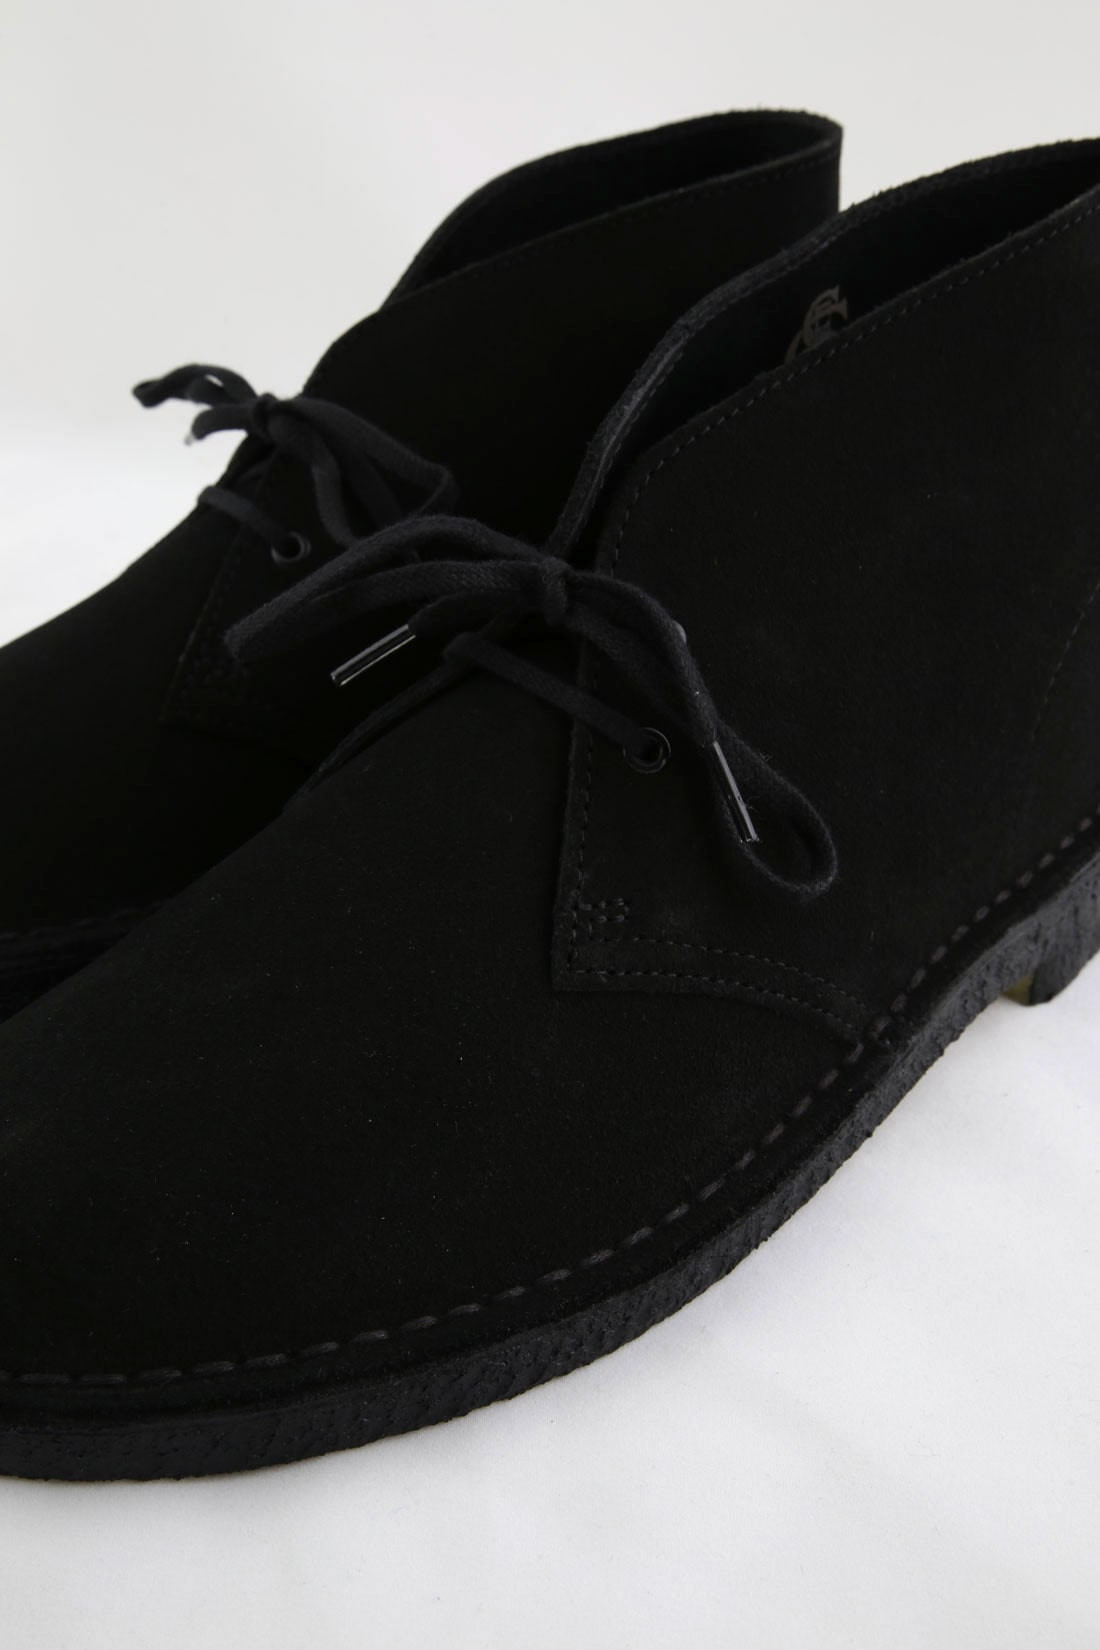 CLARKS ORIGINALS / Desert boot black suede